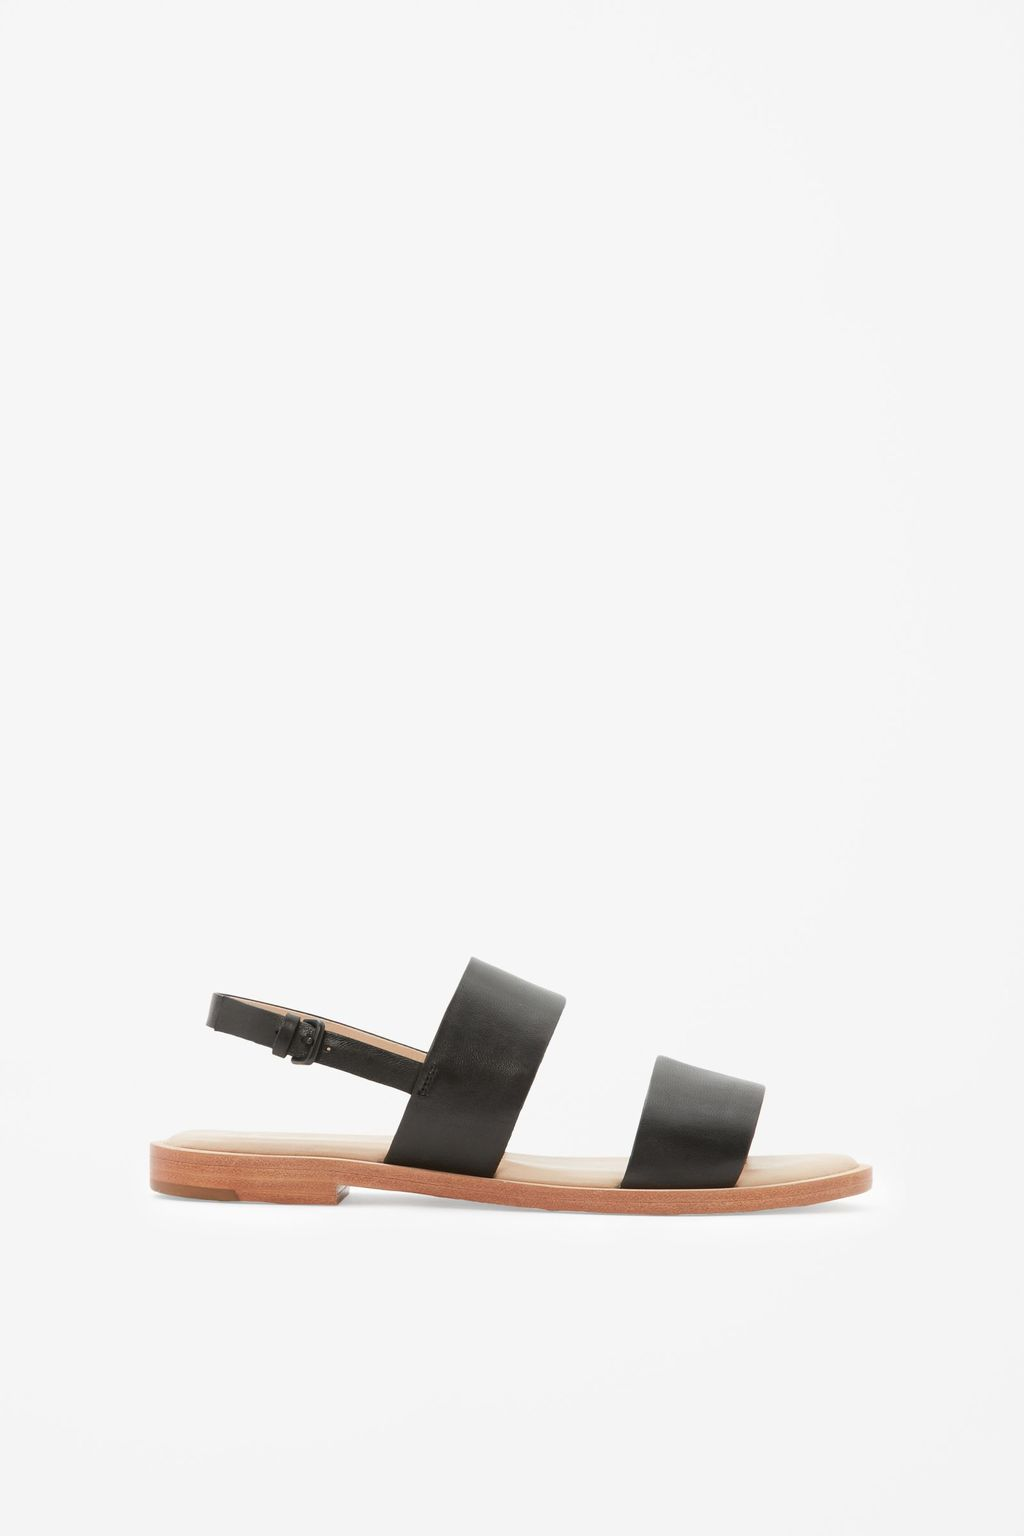 Leather Strap Sandals - predominant colour: black; occasions: casual, holiday; material: leather; heel height: flat; heel: block; toe: open toe/peeptoe; style: strappy; finish: plain; pattern: plain; season: s/s 2016; wardrobe: basic